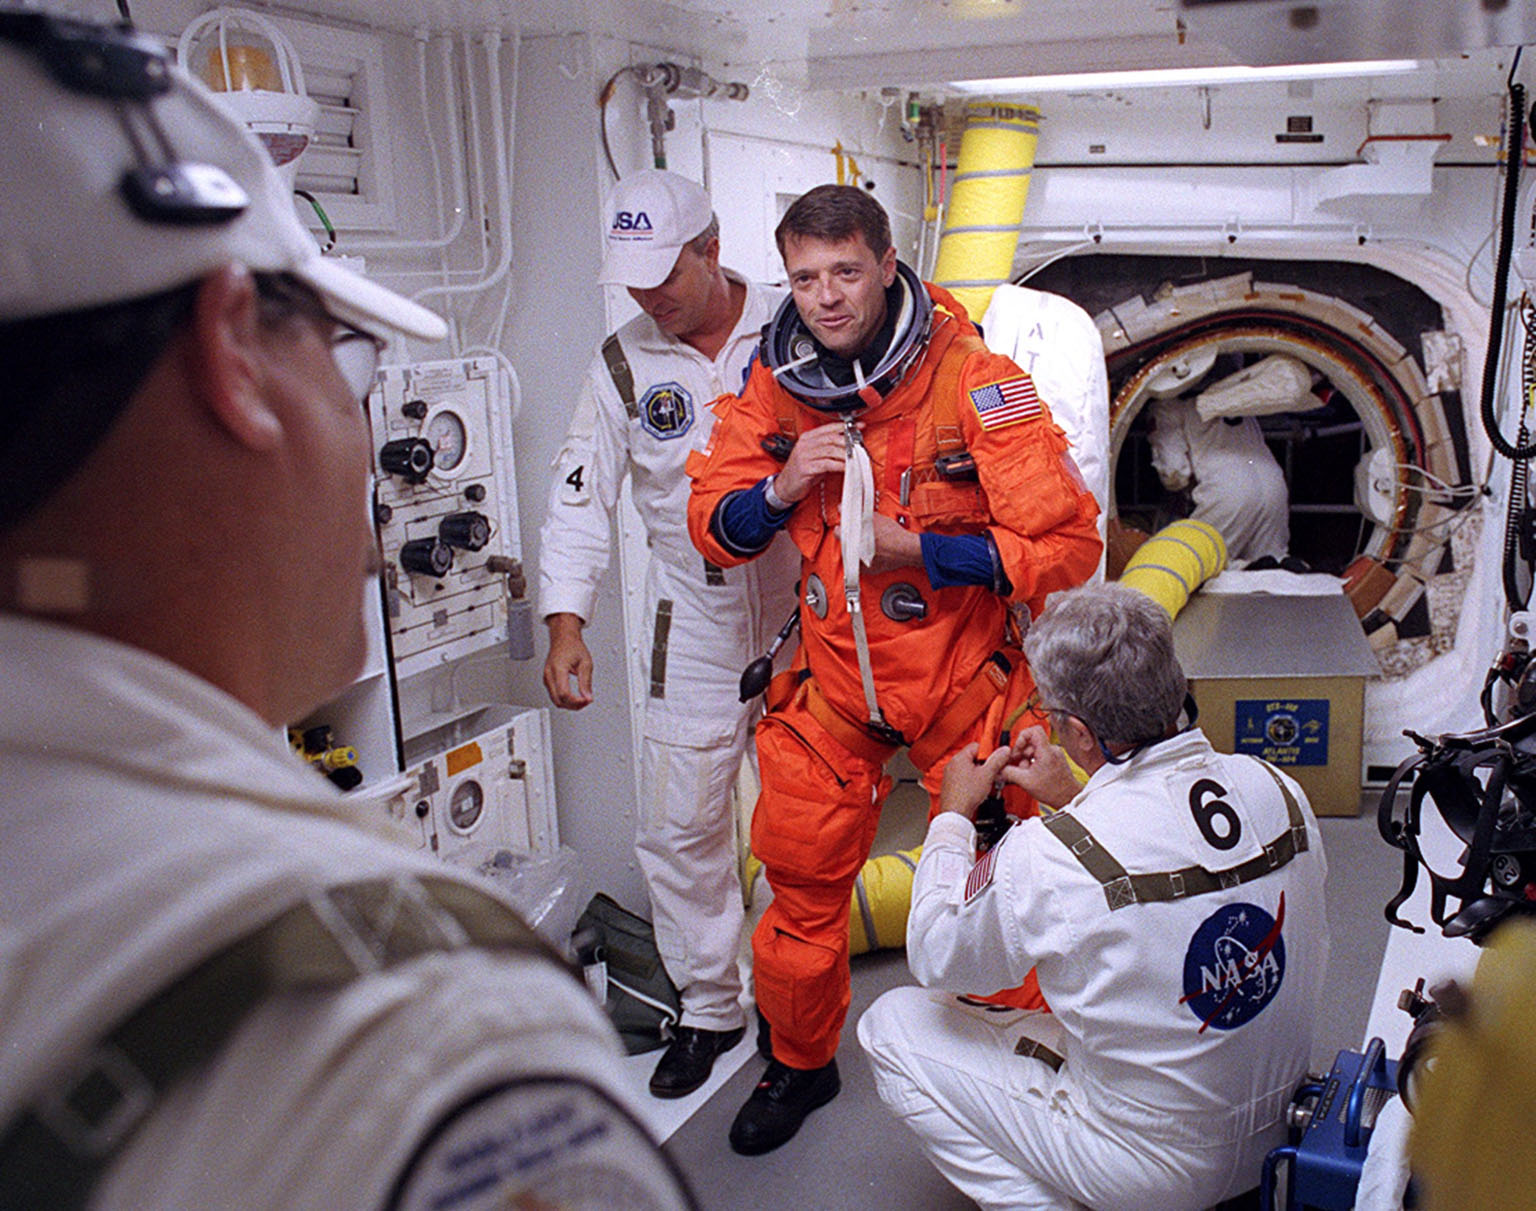 KENNEDY SPACE CENTER, FLA. - -- In the White Room at Launch Pad 39B, STS-112 Commander Jeffrey Ashby receives assistance with his spacesuit before boarding Space Shuttle Atlantis. Liftoff is schedued for 3:46 p.m. EDT. Along with a crew of six, Atlantis will carry the S1 Integrated Truss Structure and the Crew and Equipment Translation Aid (CETA) Cart A to the International Space Station (ISS). The CETA is the first of two human-powered carts that will ride along the ISS railway, providing mobile work platforms for future spacewalking astronauts. On the 11-day mission, three spacewalks are planned to attach the S1 truss.